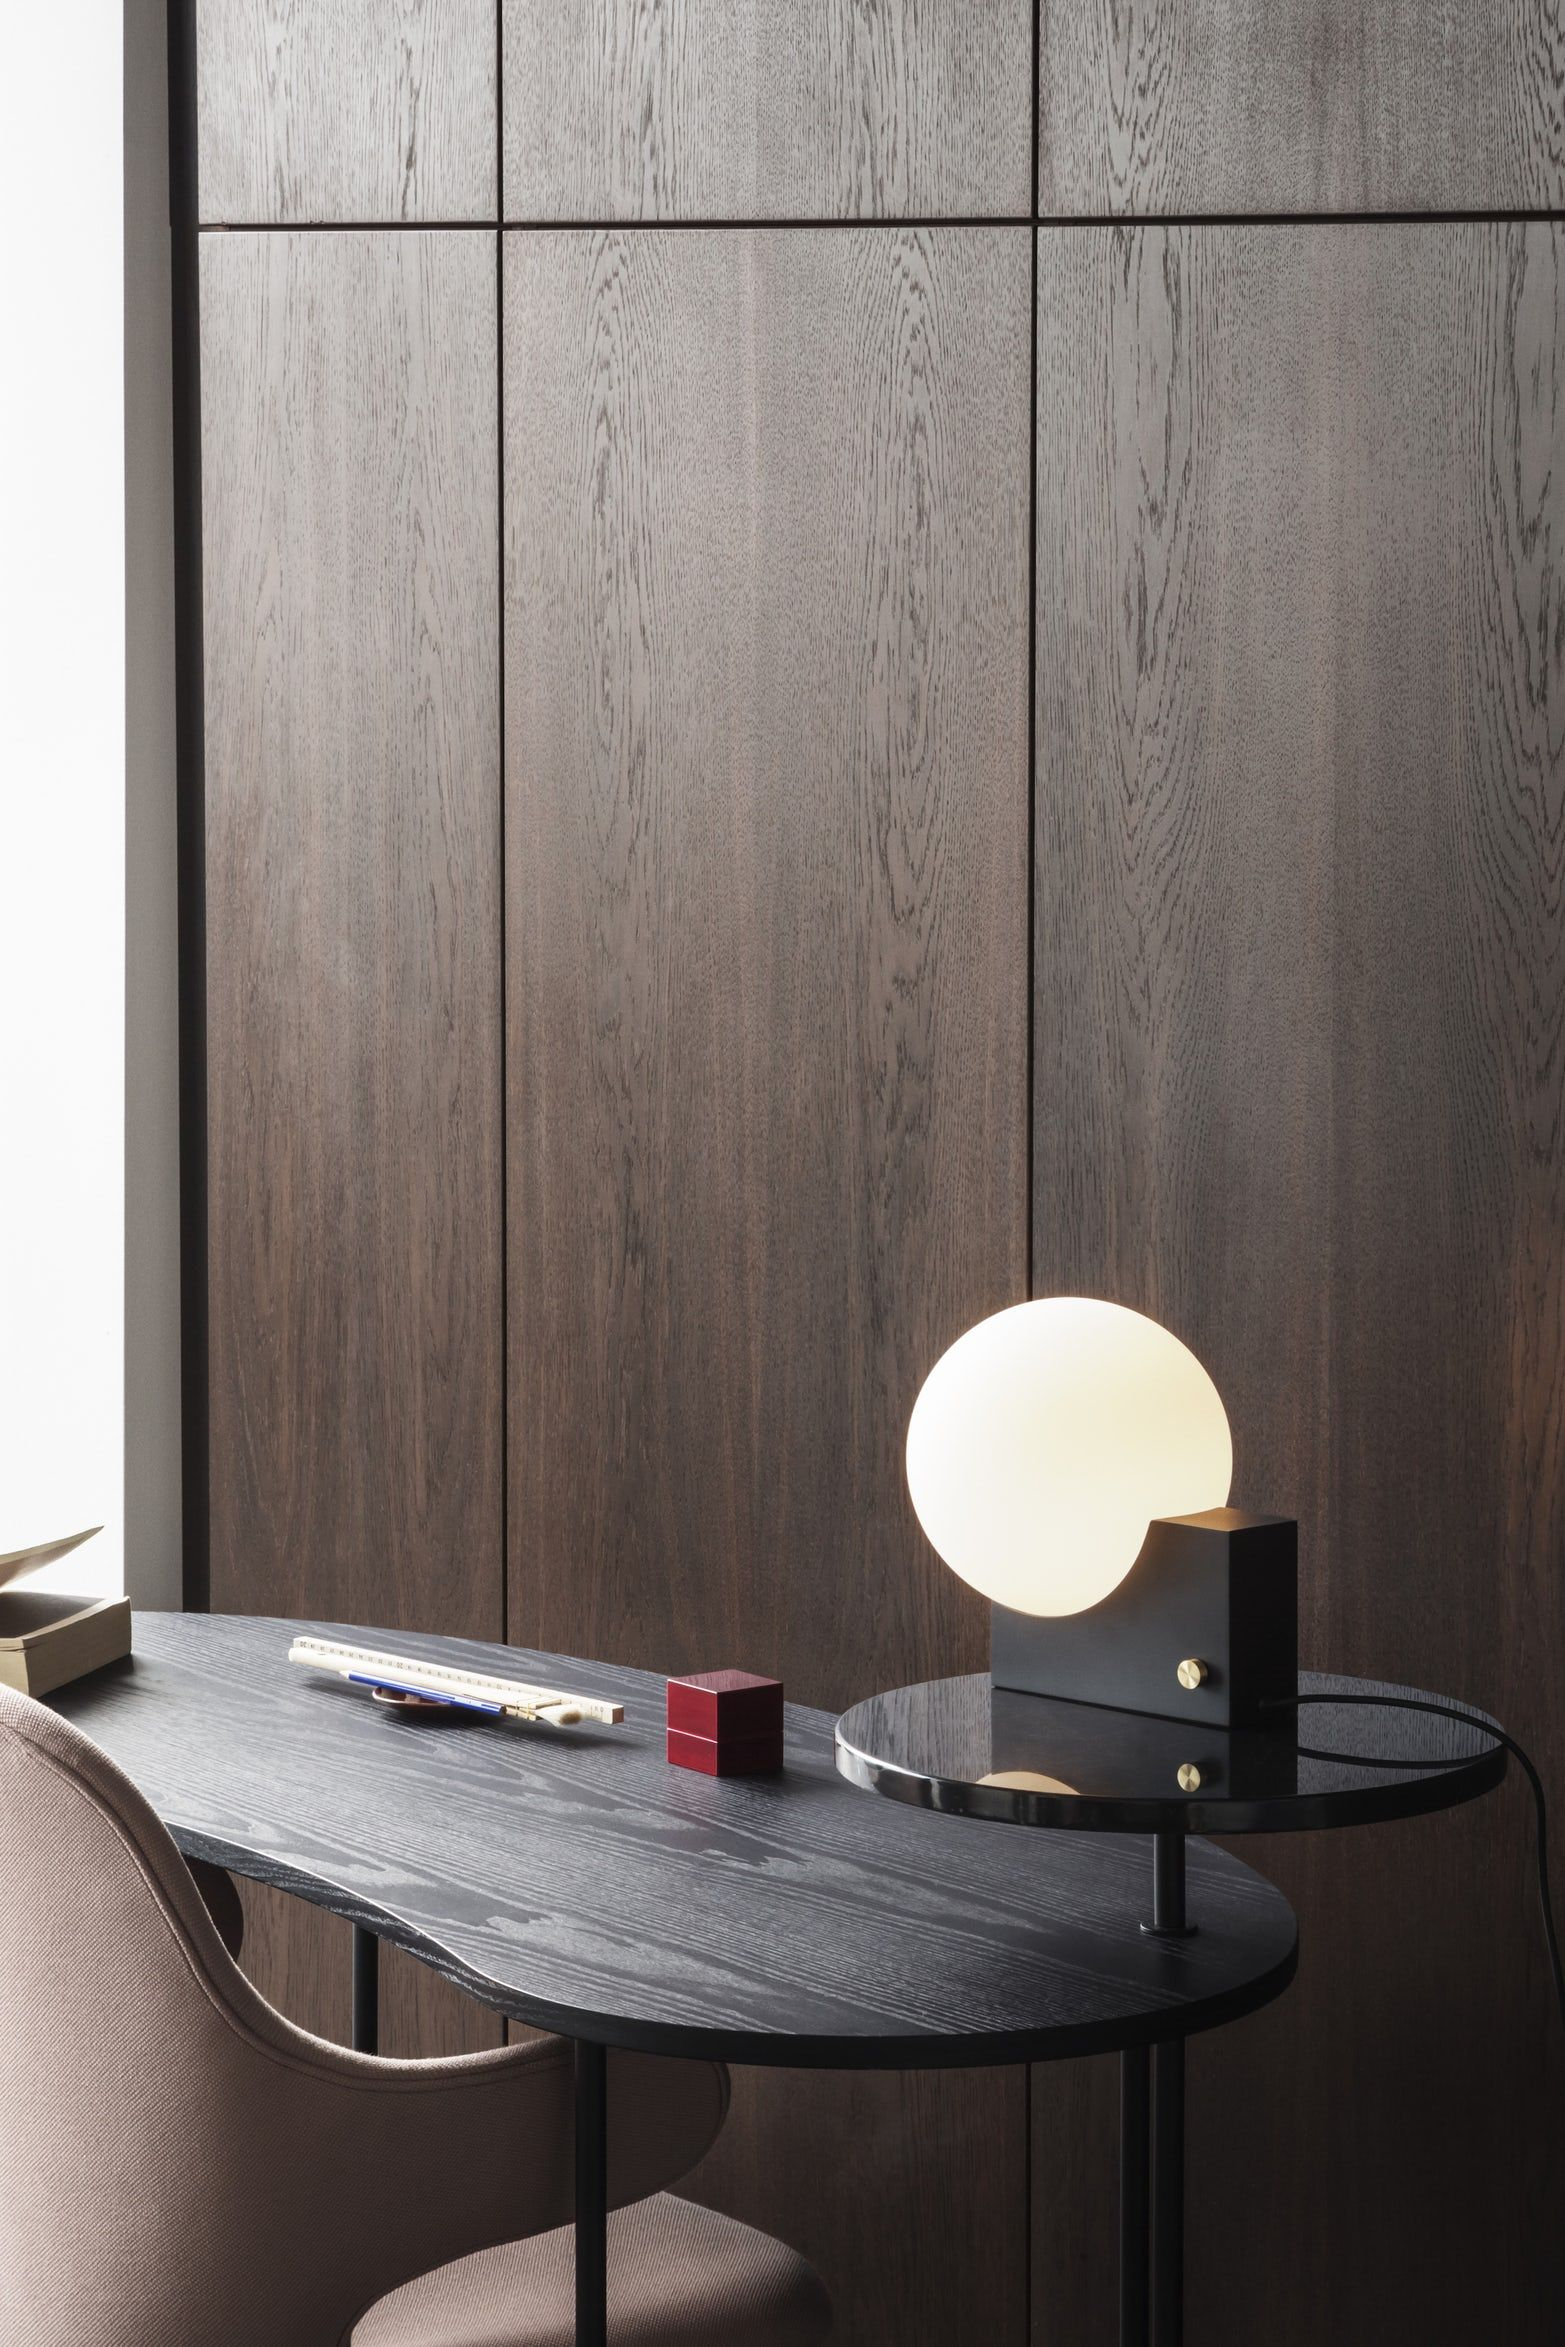 Palette Jh9 Desk For Tradition In 2020 Coffee Table Design Contemporary Lighting Design Black Table Lamps